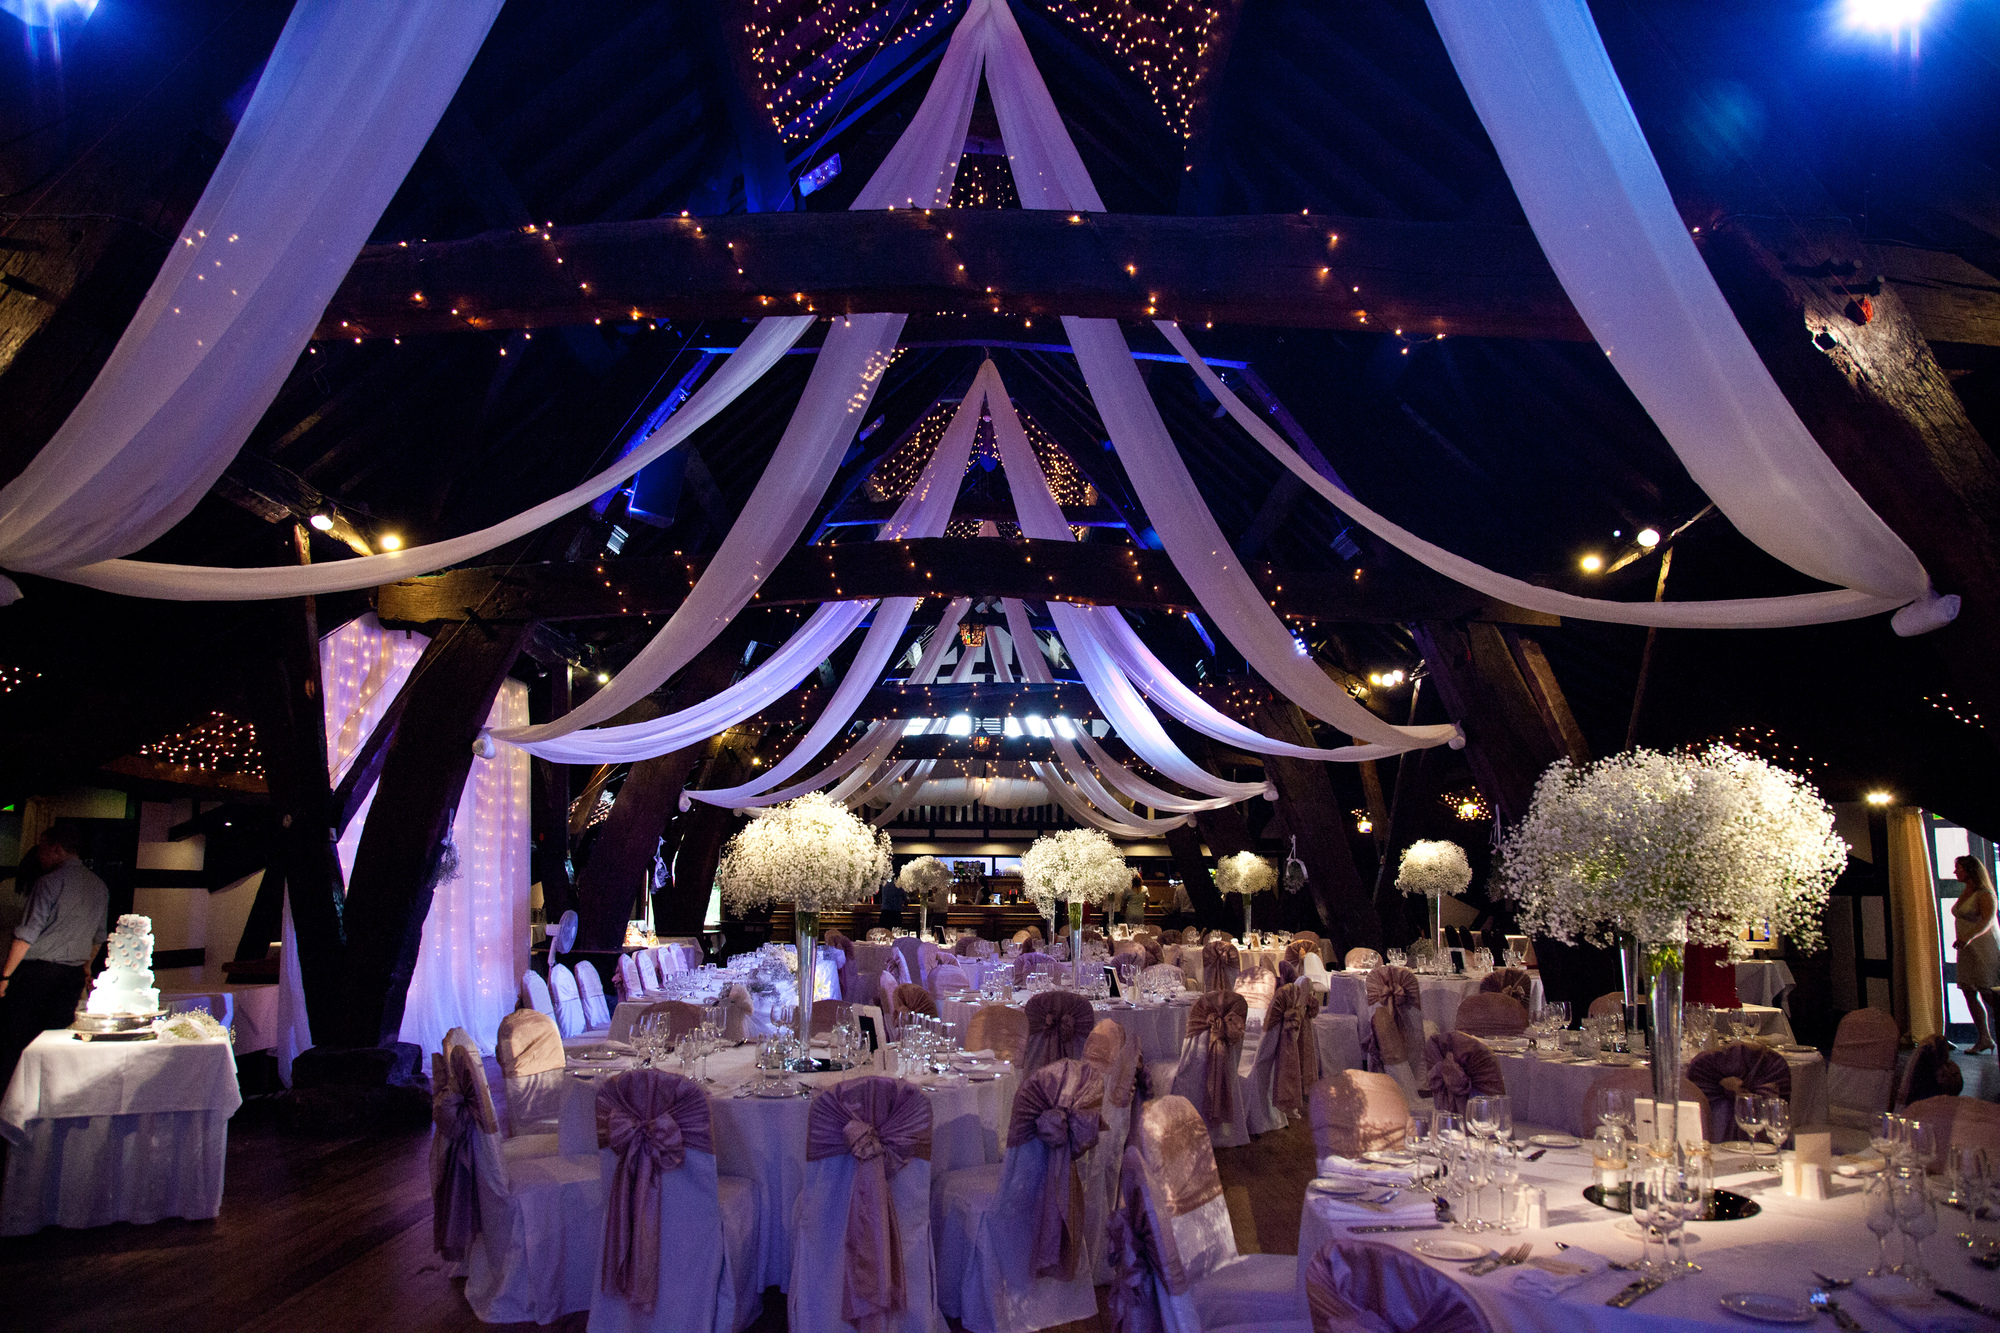 Rivington Hall Barn Wedding Reception Venues In Rivington Lancashire